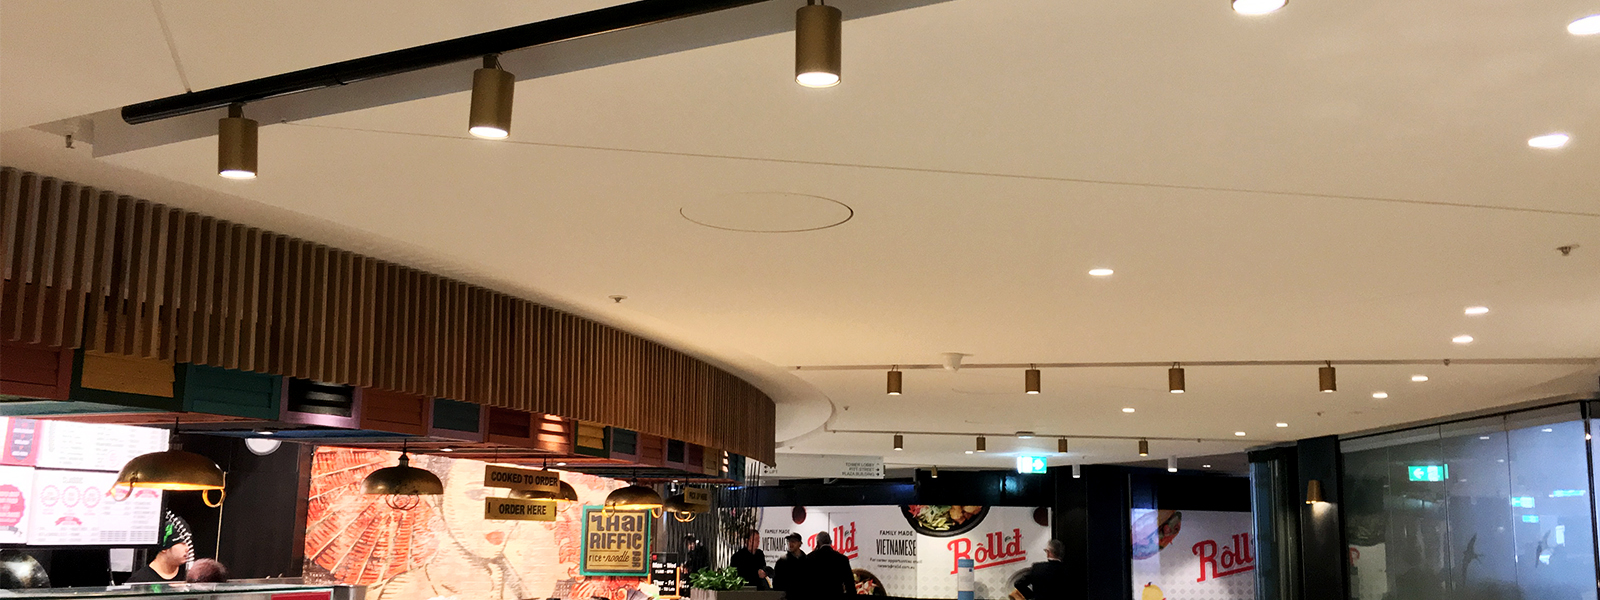 Australia Square Food Court, Sydney